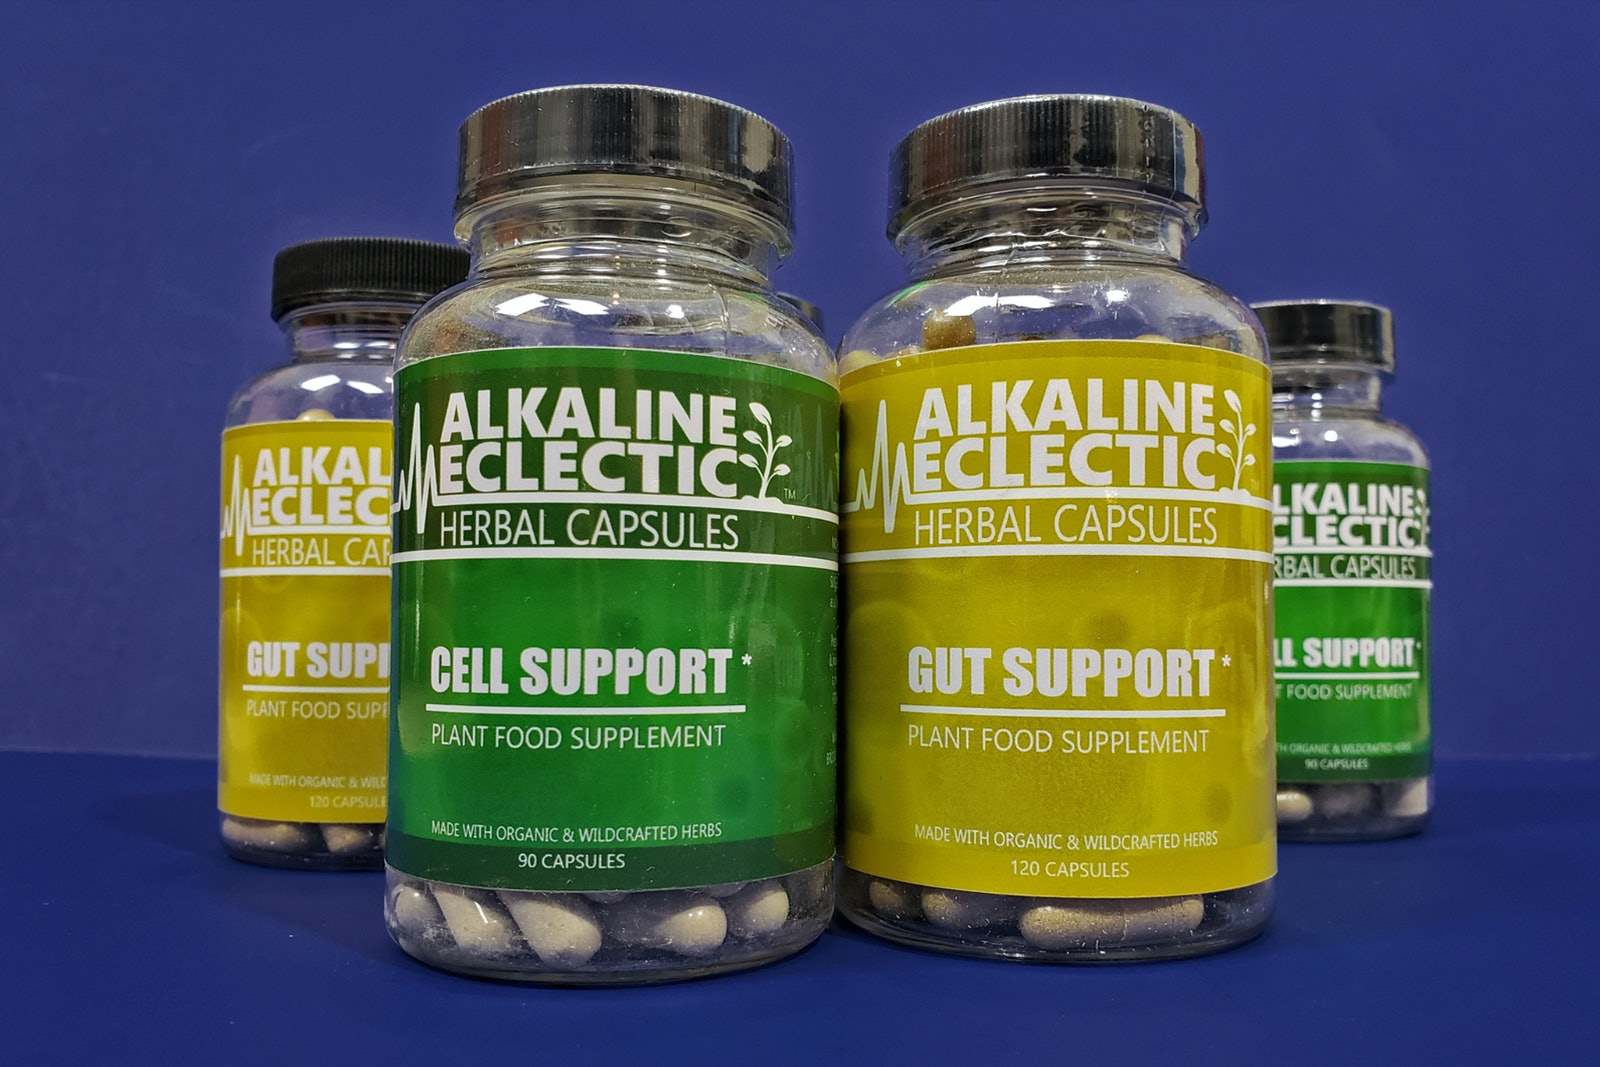 CELL SUPPORT HERBAL CAPSULES - ALKALINE ECLECTIC DIGITAL STORE